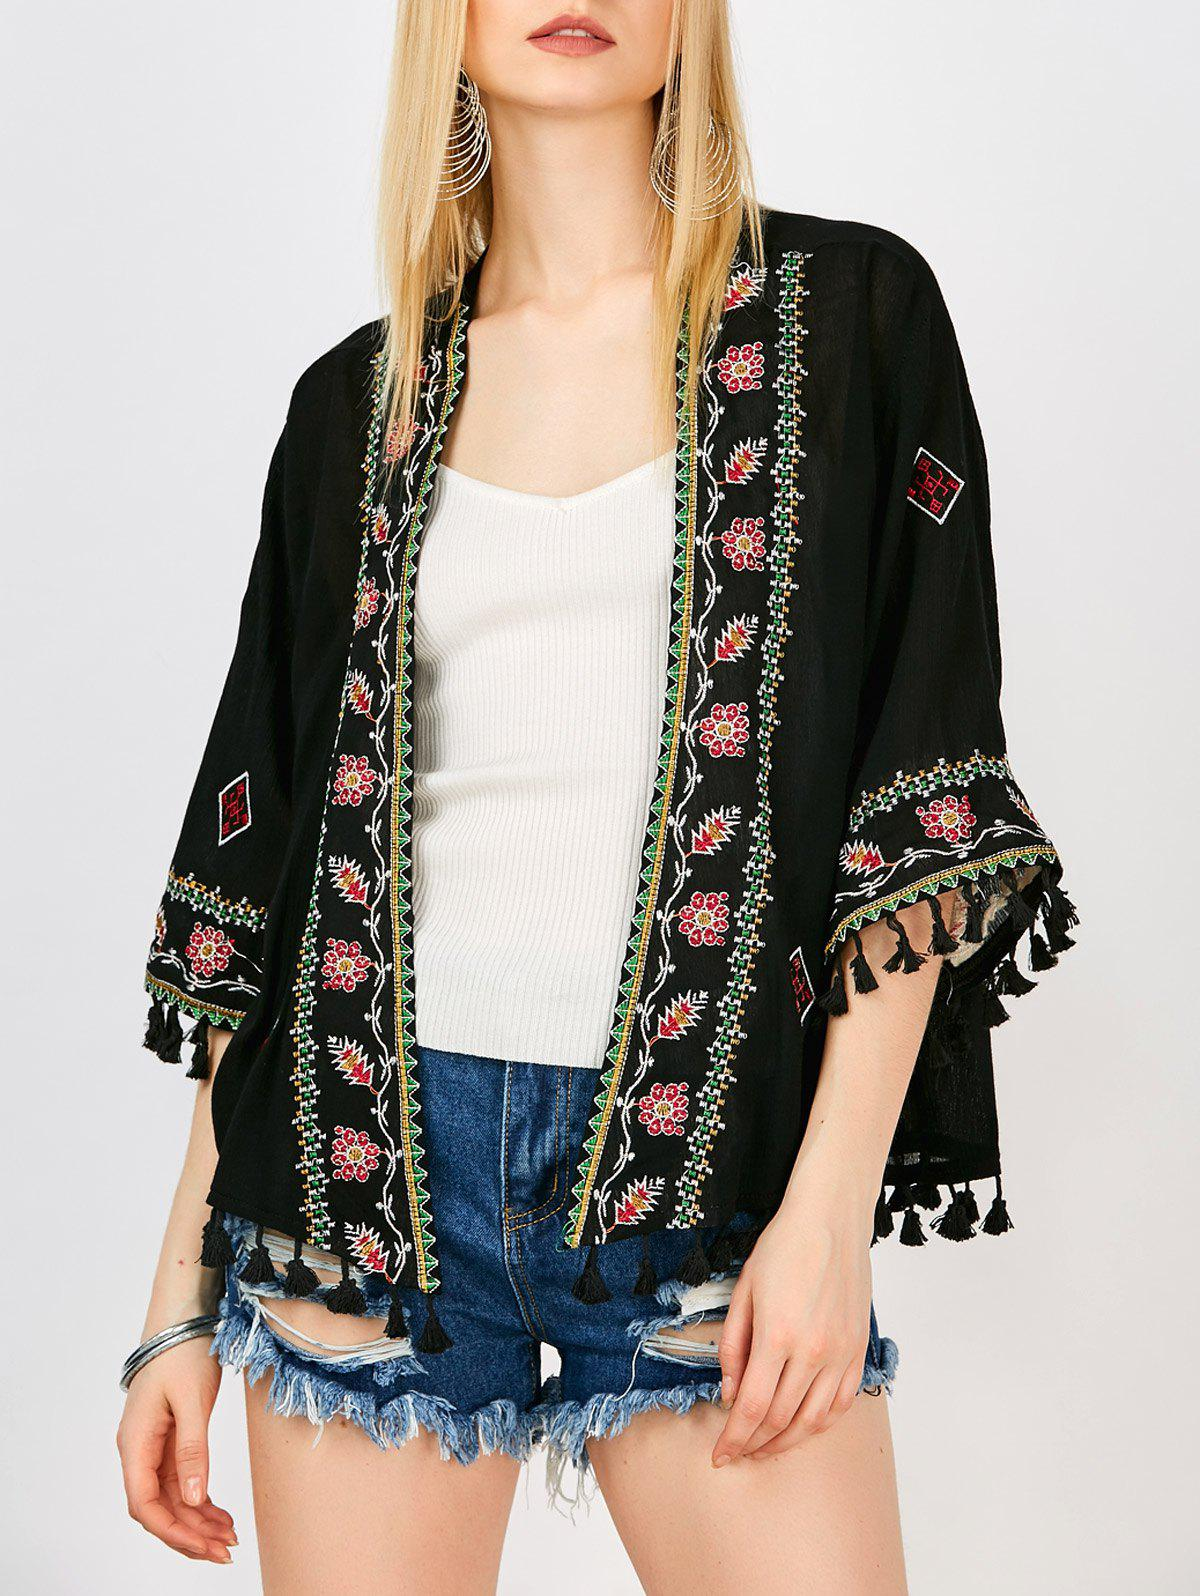 Floral embroidered tassel open front kimono black one